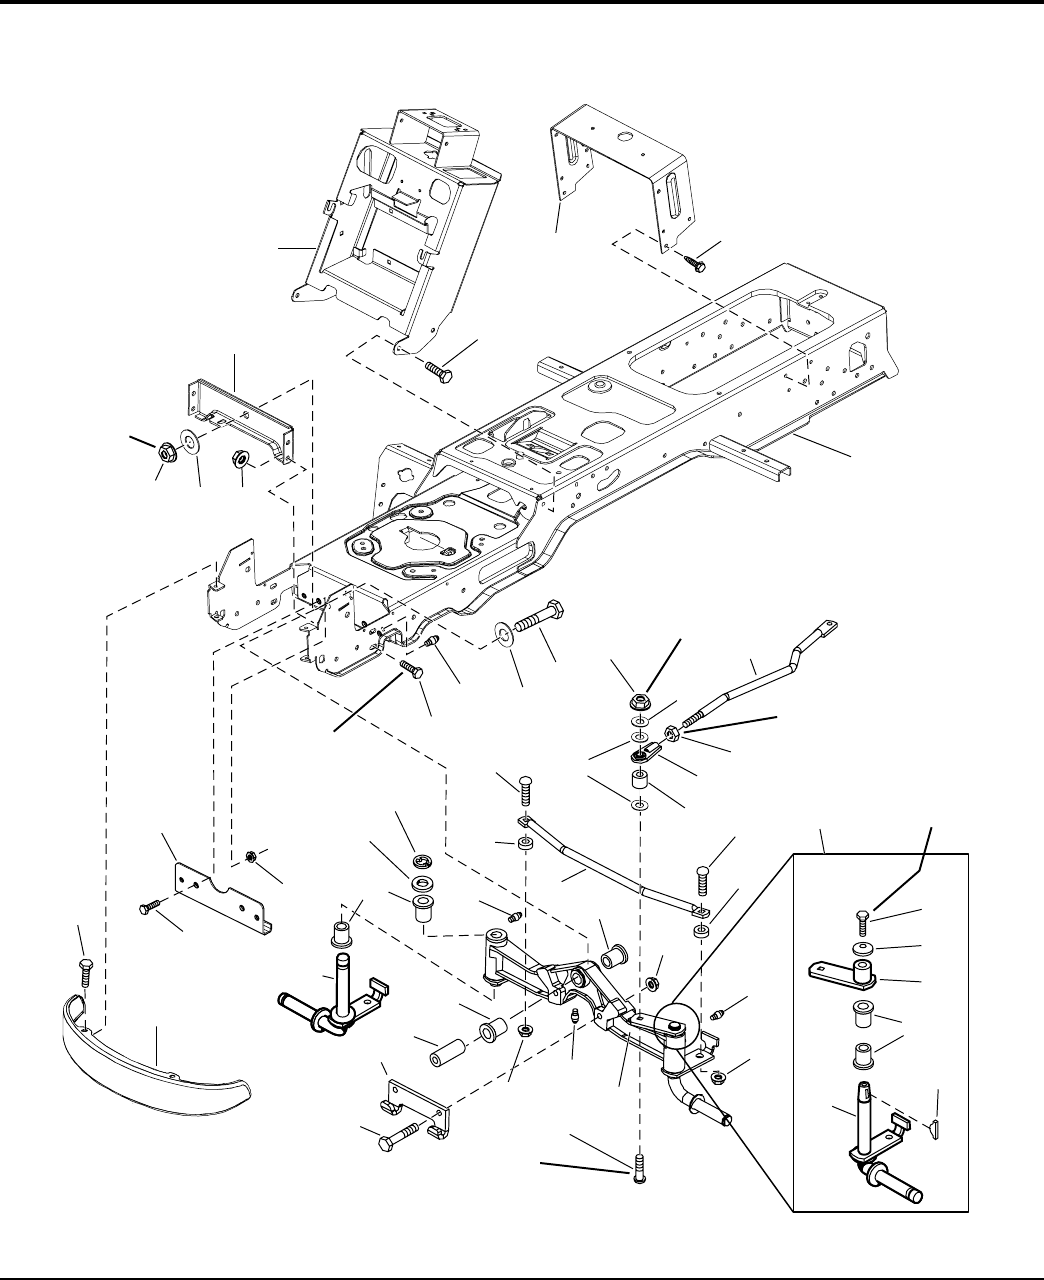 Frame front axle group